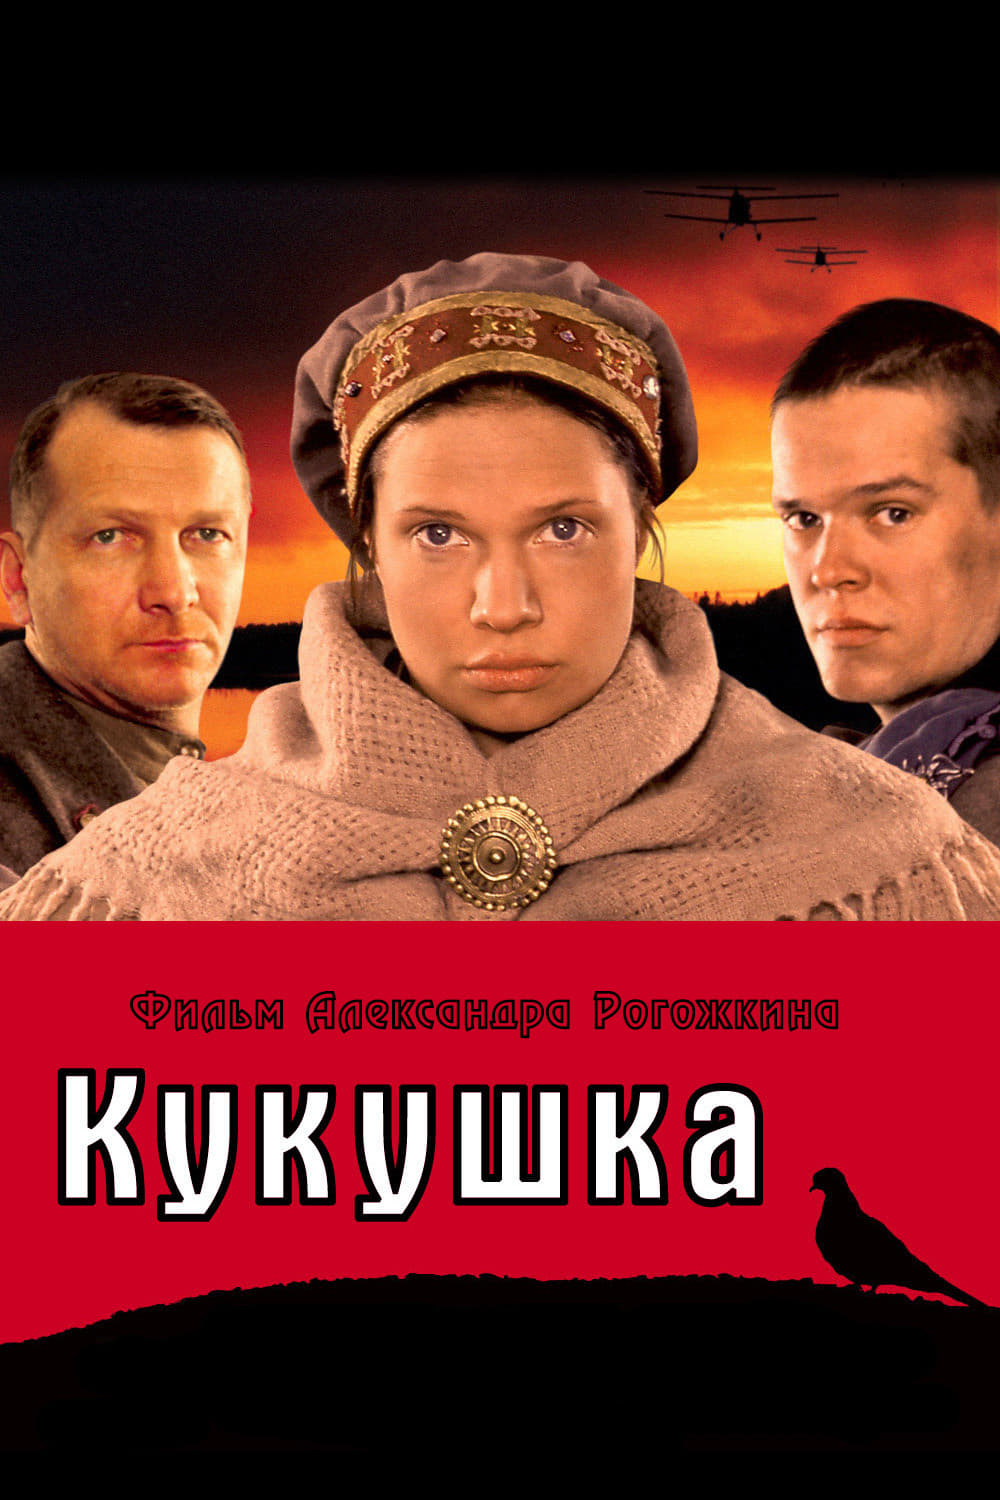 Poster and image movie Film Cucul - Kukushka - The Cuckoo - The Cuckoo -  2002